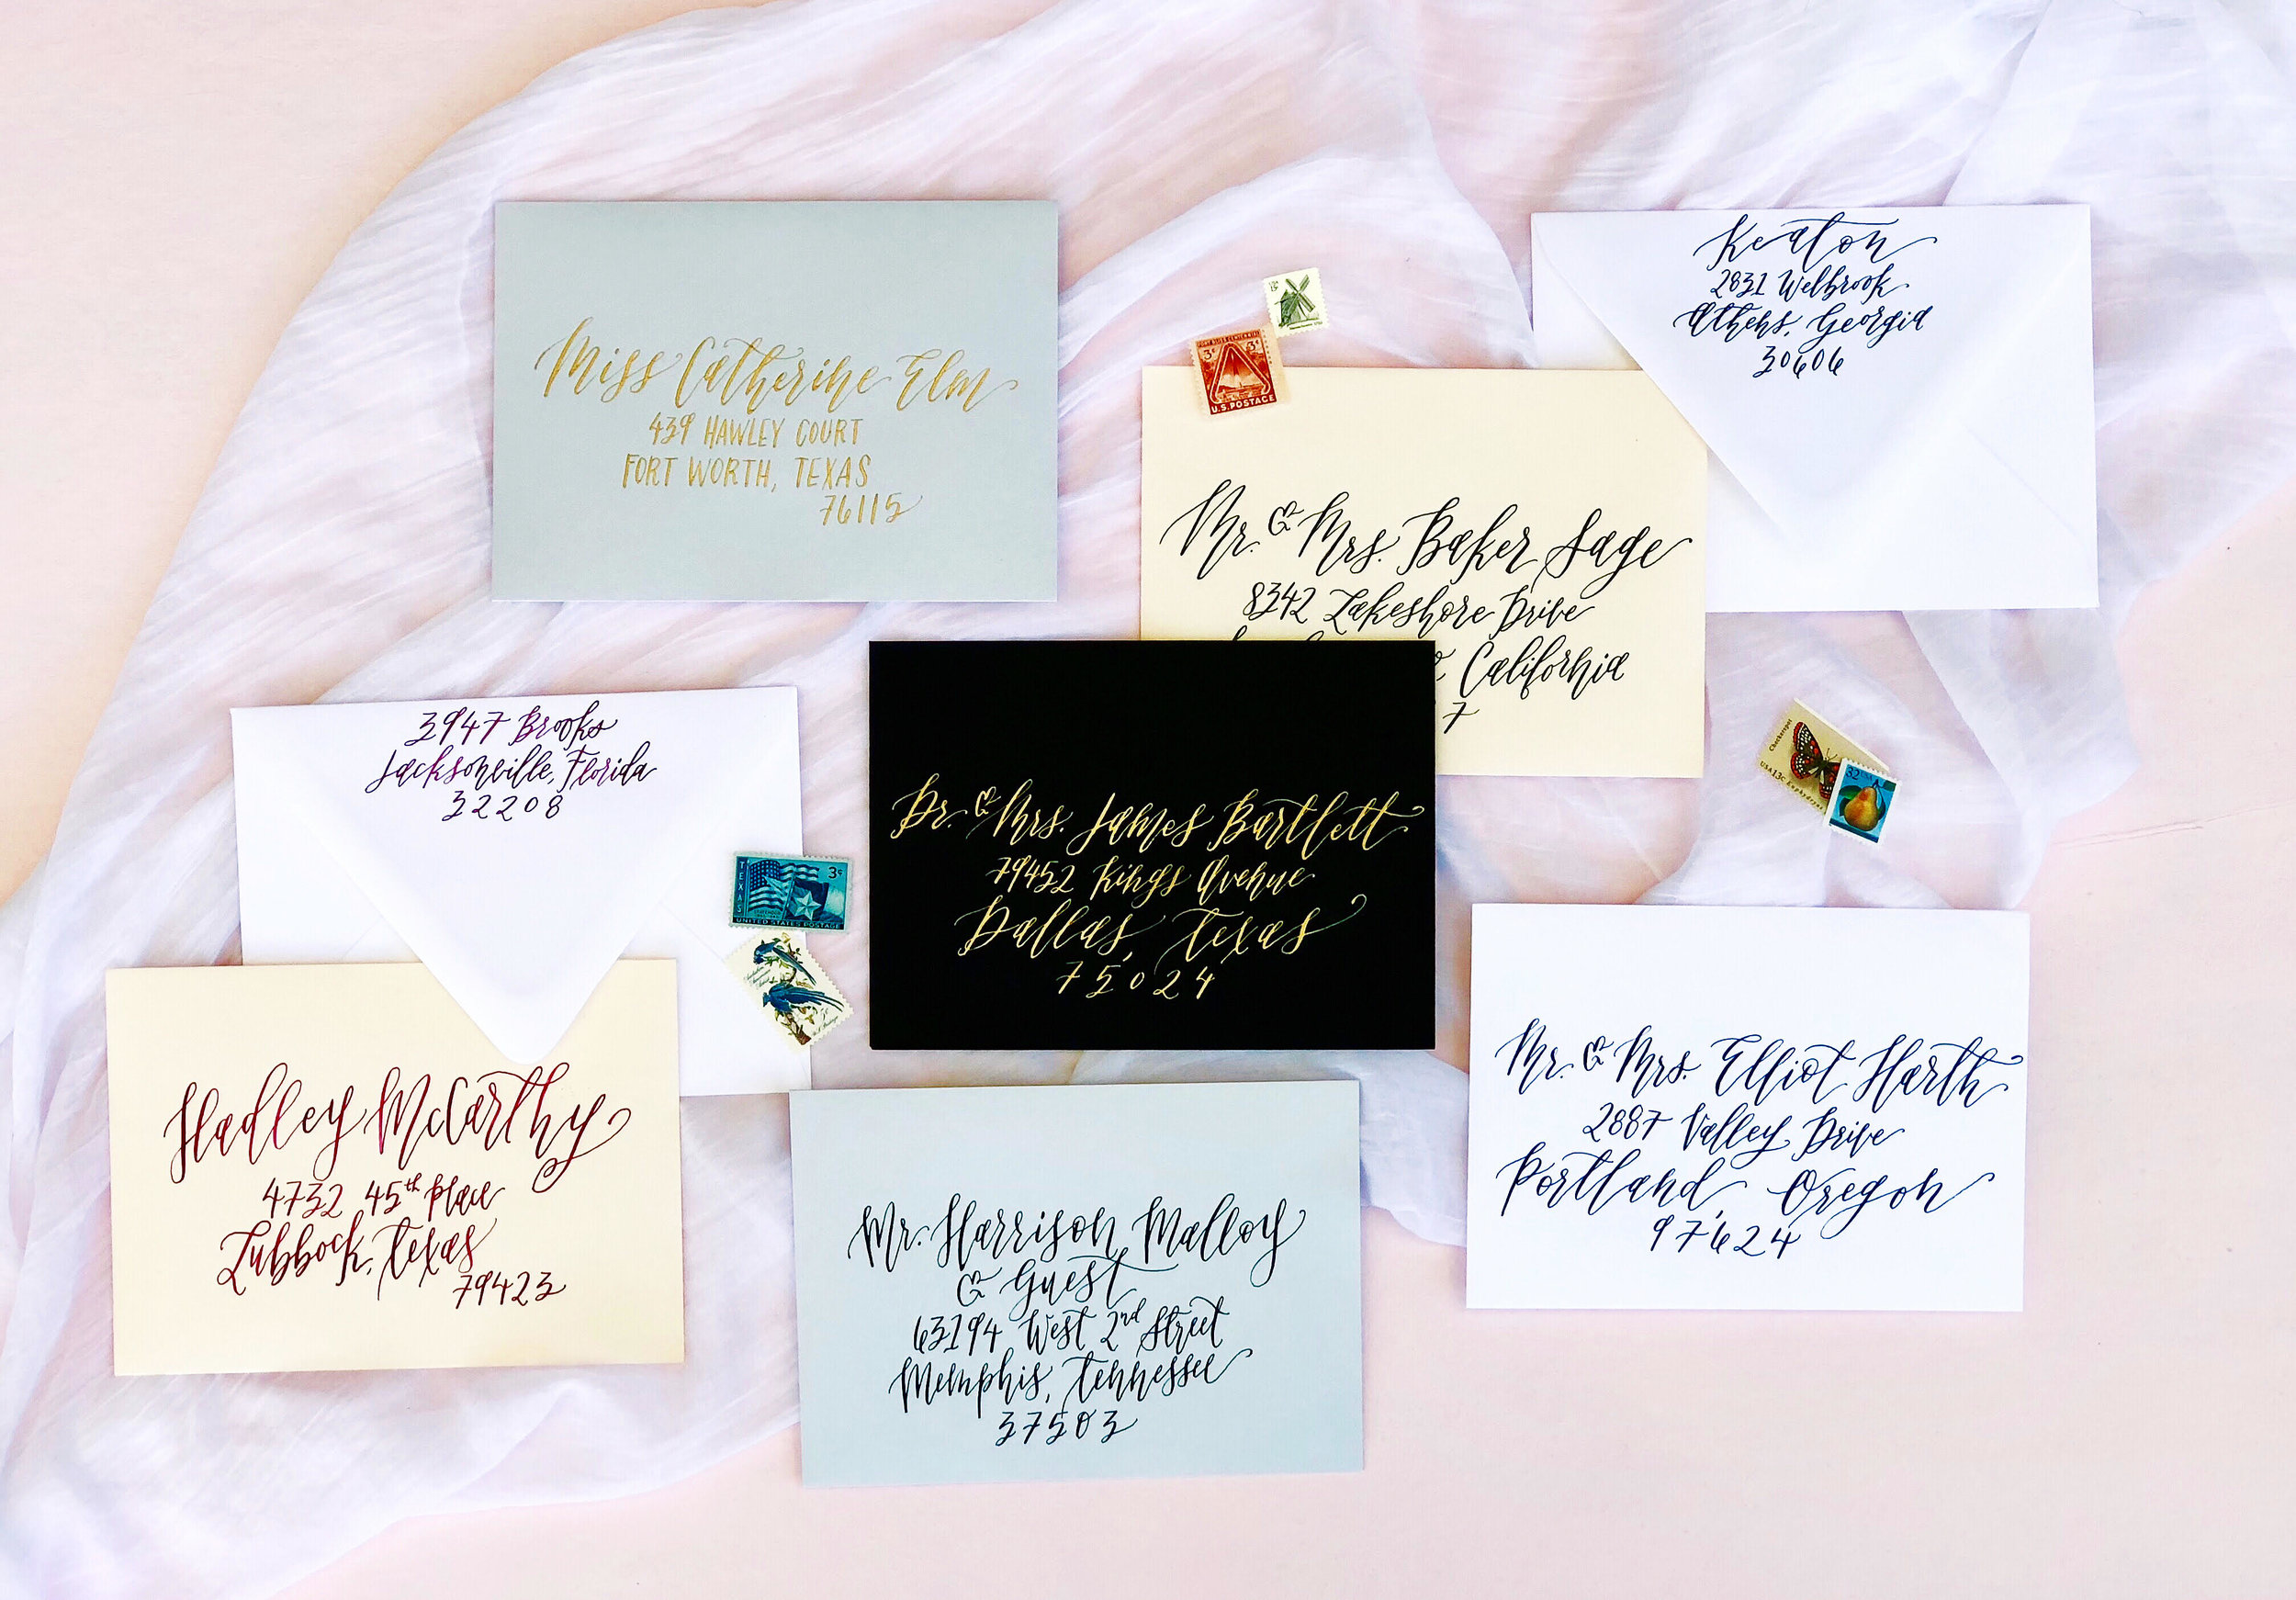 Connar Joy Calligraphy Envelope Examples